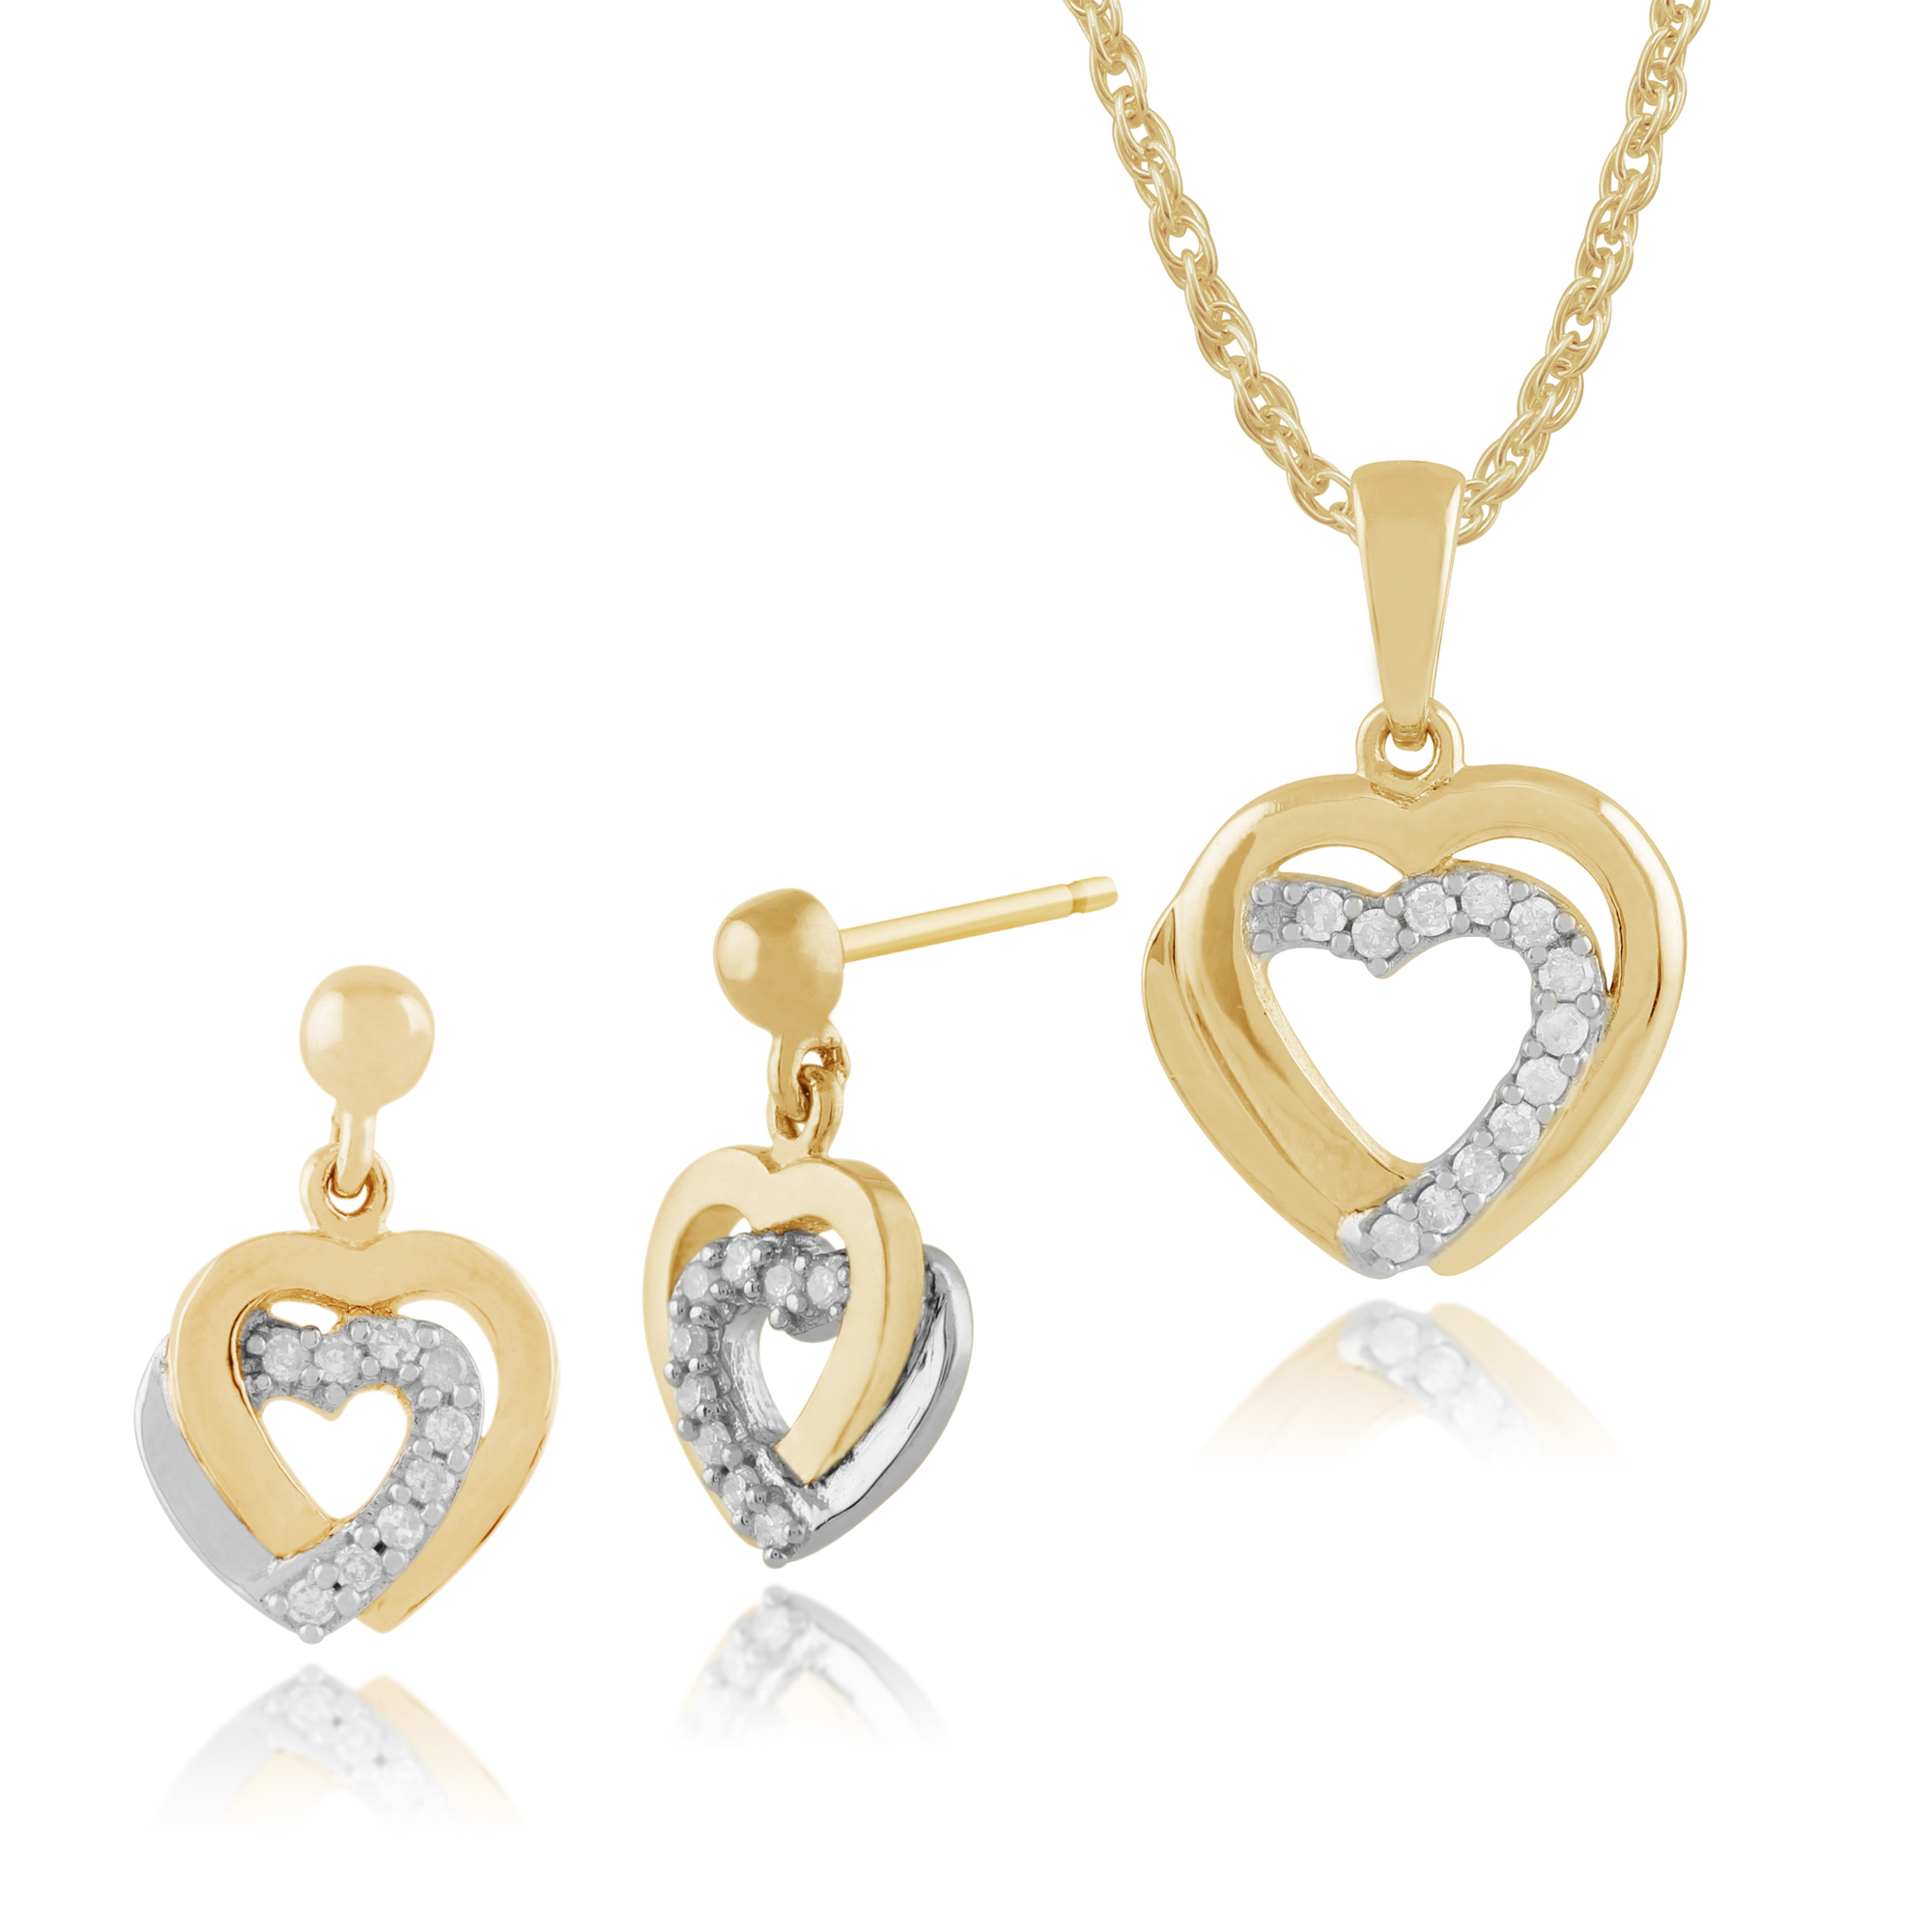 Gemondo 9ct Yellow Gold Diamond Hearts Drop Earrings & 45cm Necklace Set